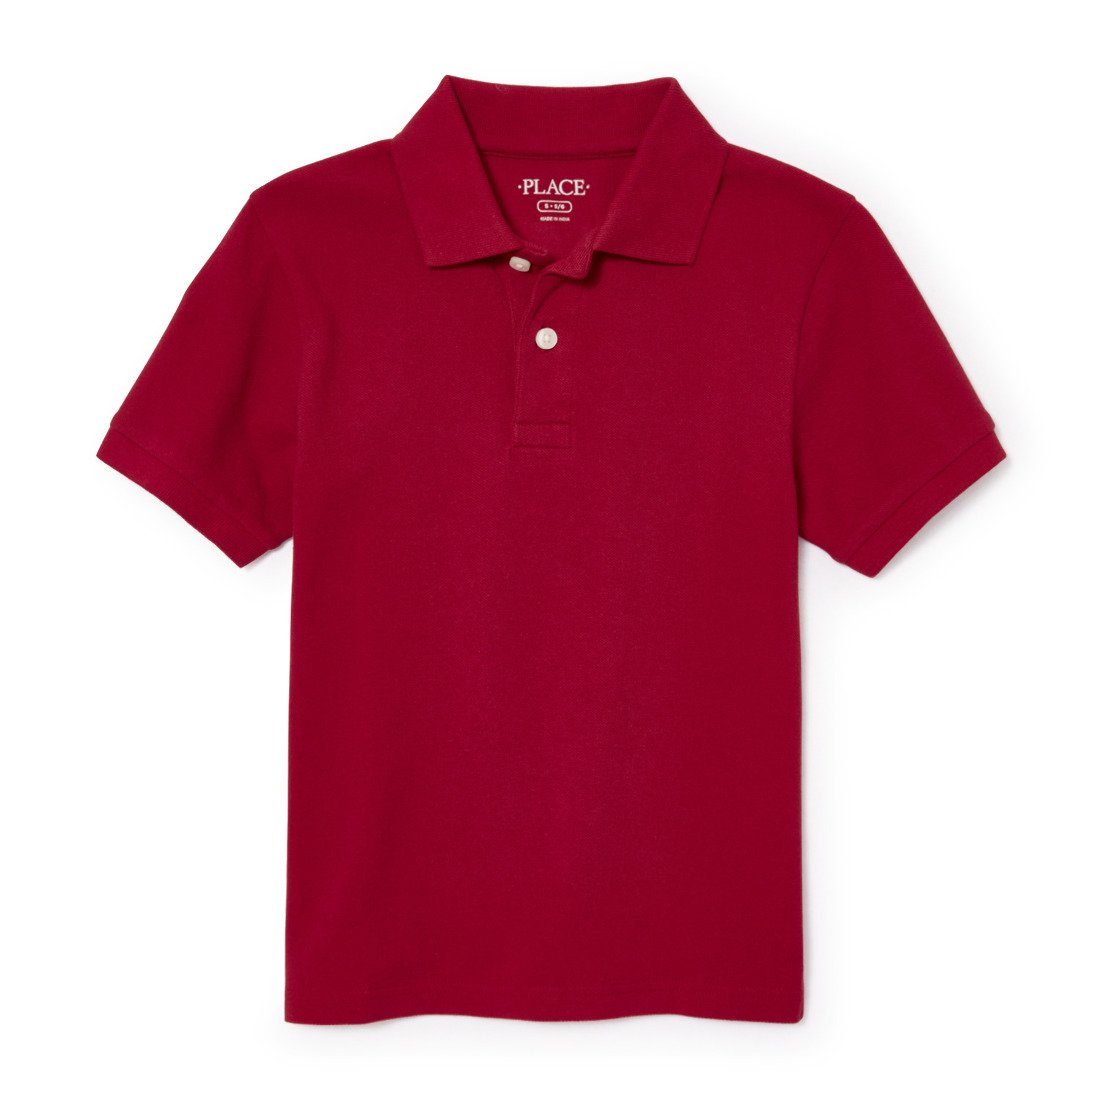 The Children's Place Big Boys' Short Sleeve Uniform Polo, CLASSICRED 4756, Medium/7/8